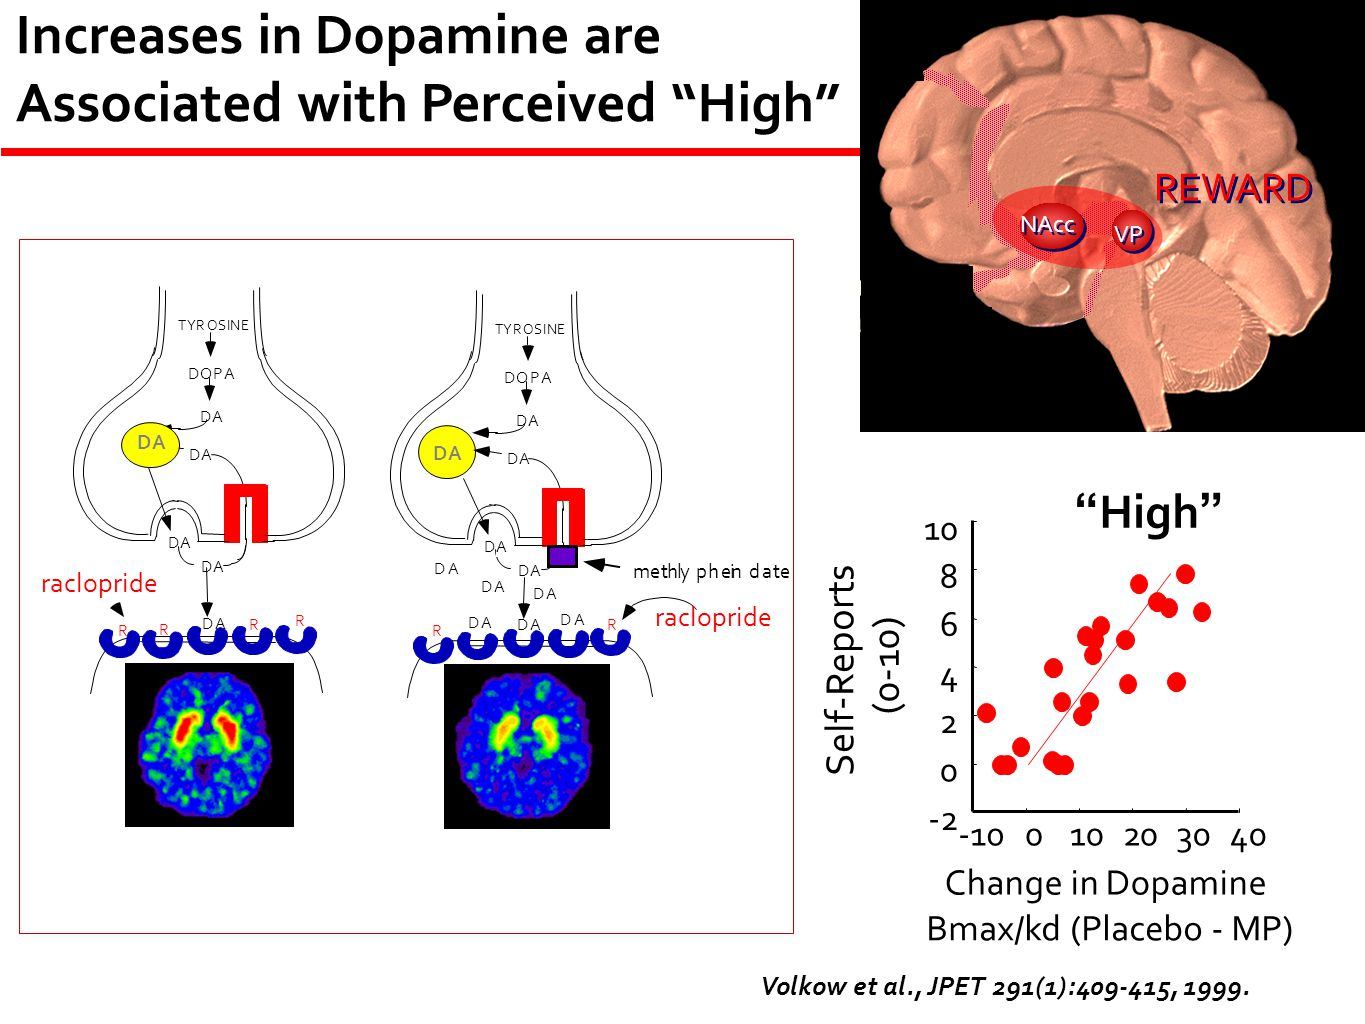 Increases in Dopamine are Associated with Perceived High